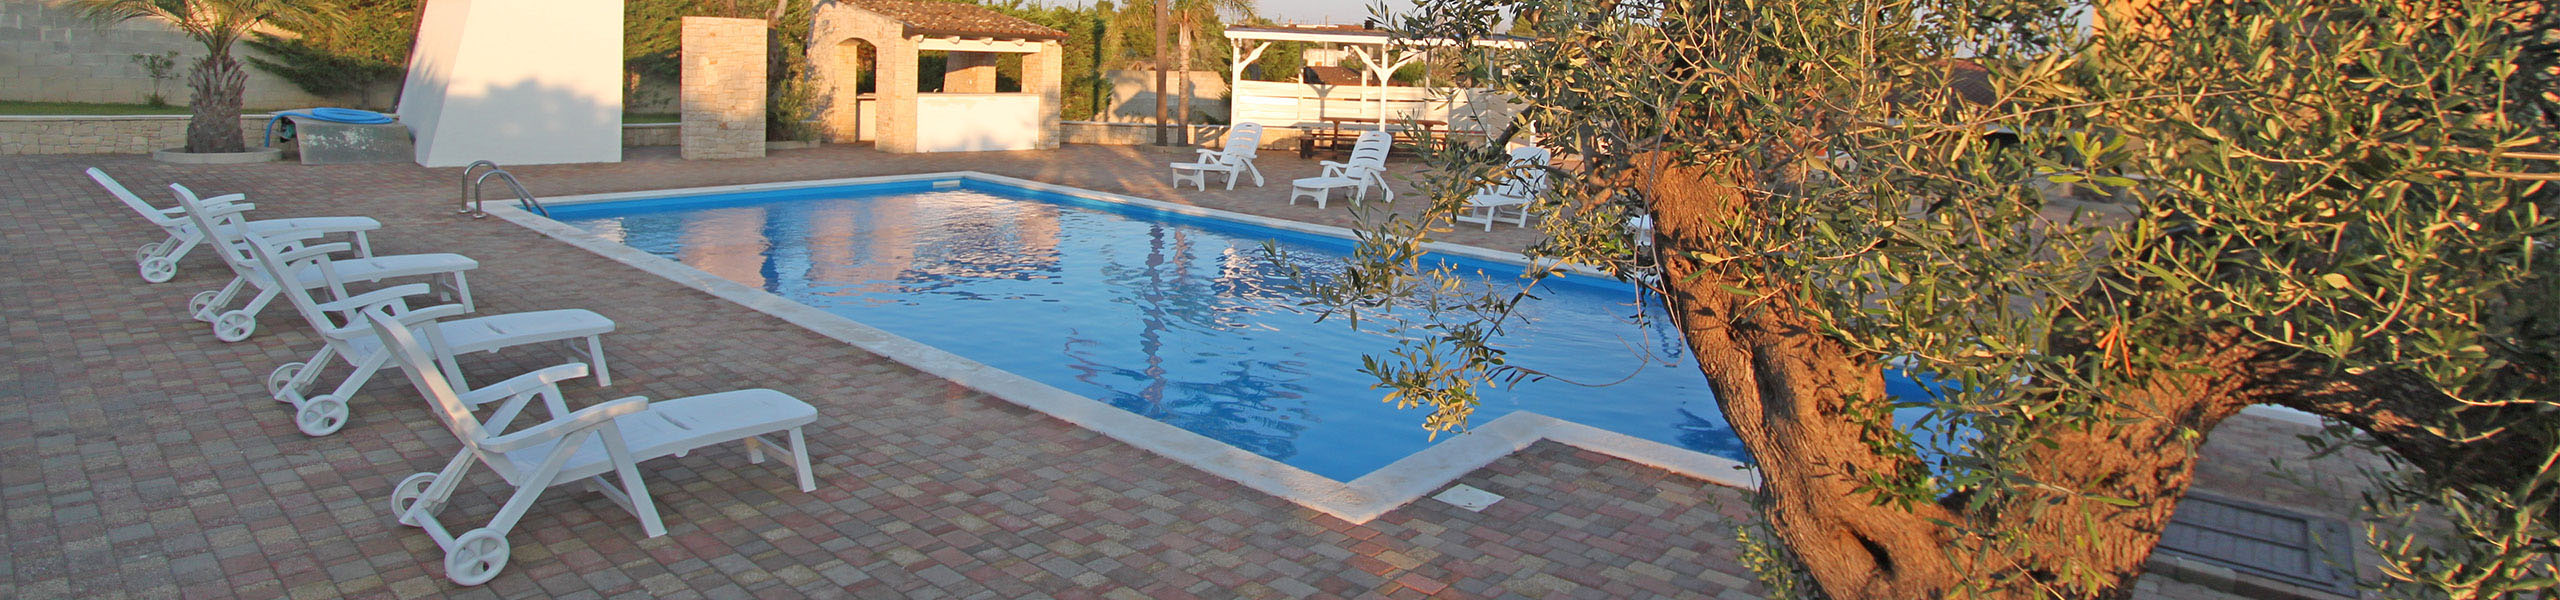 Affordable Luxury Villa Chiarita with Pool 5/min from beachAffordable Luxury with Pool 5/min from beach